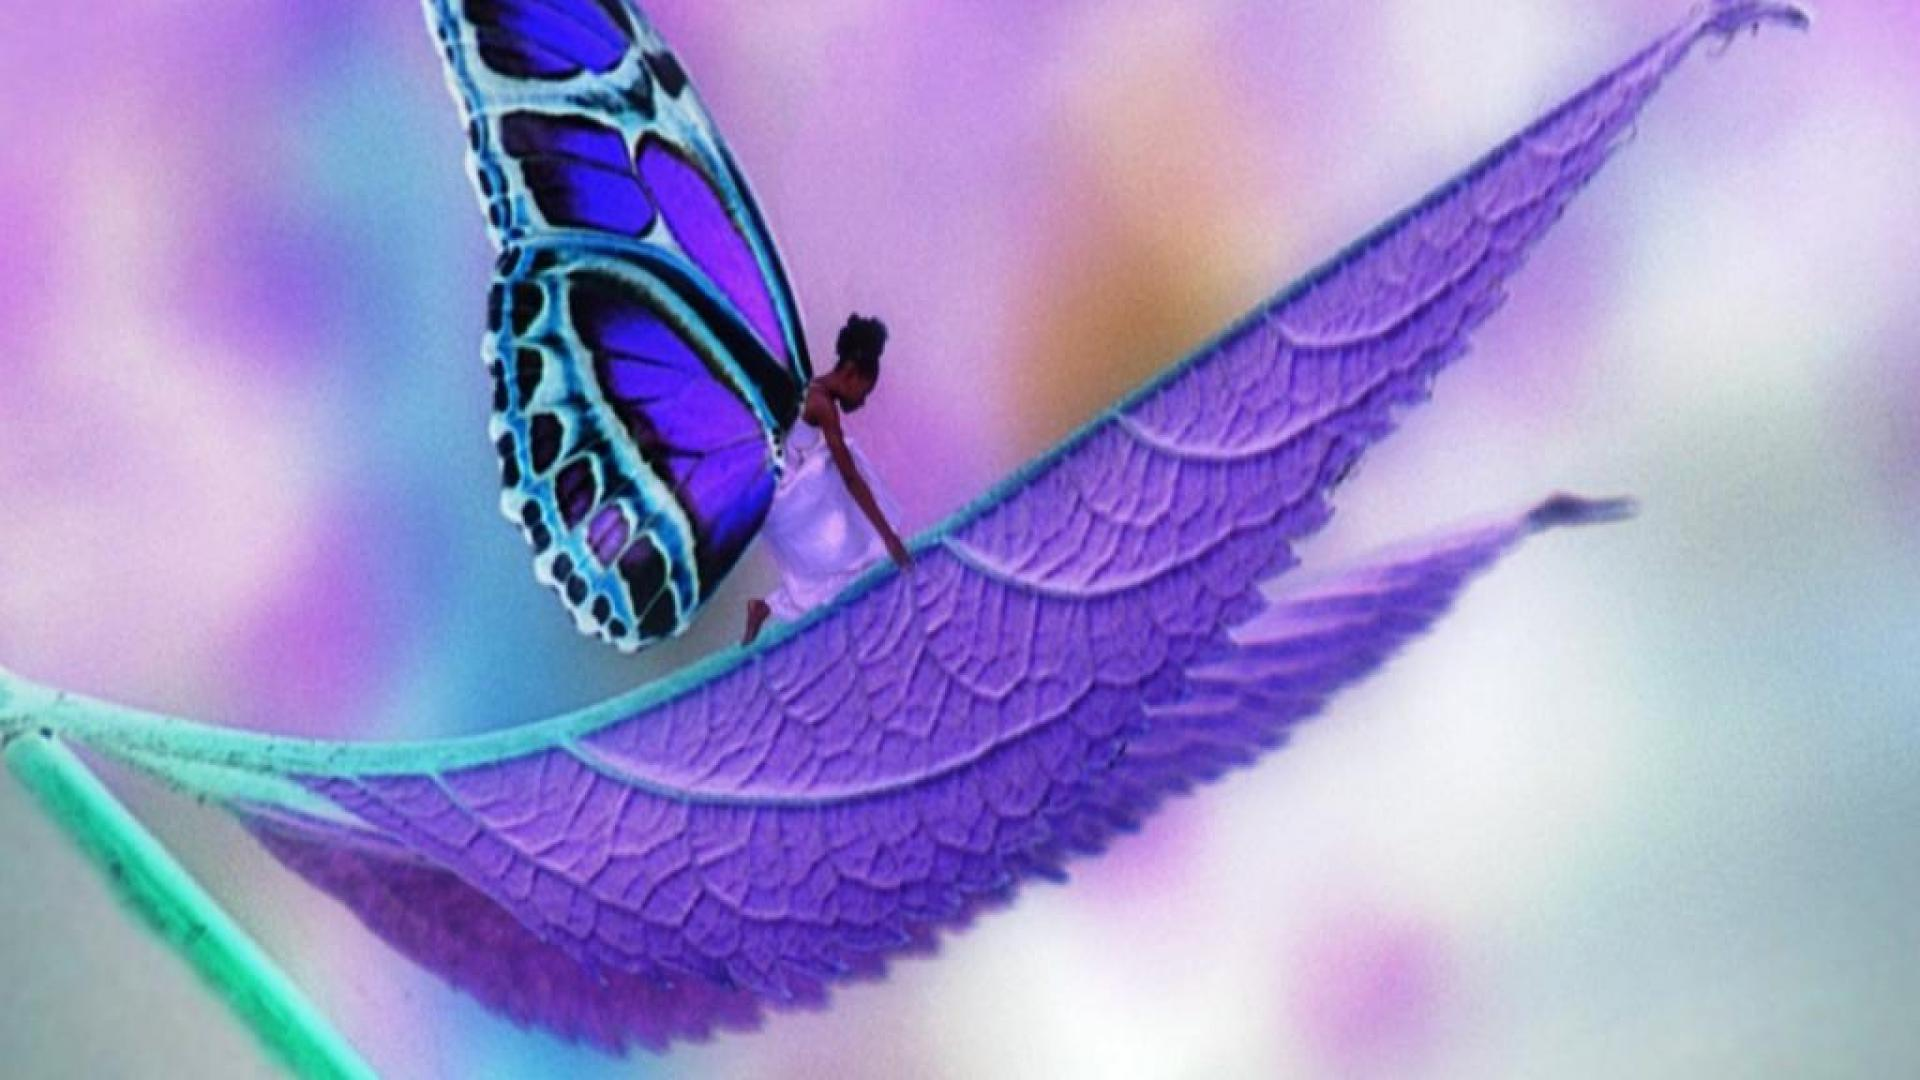 cute purple butterfly wallpaper   91706   HQ Desktop Wallpapers 1920x1080